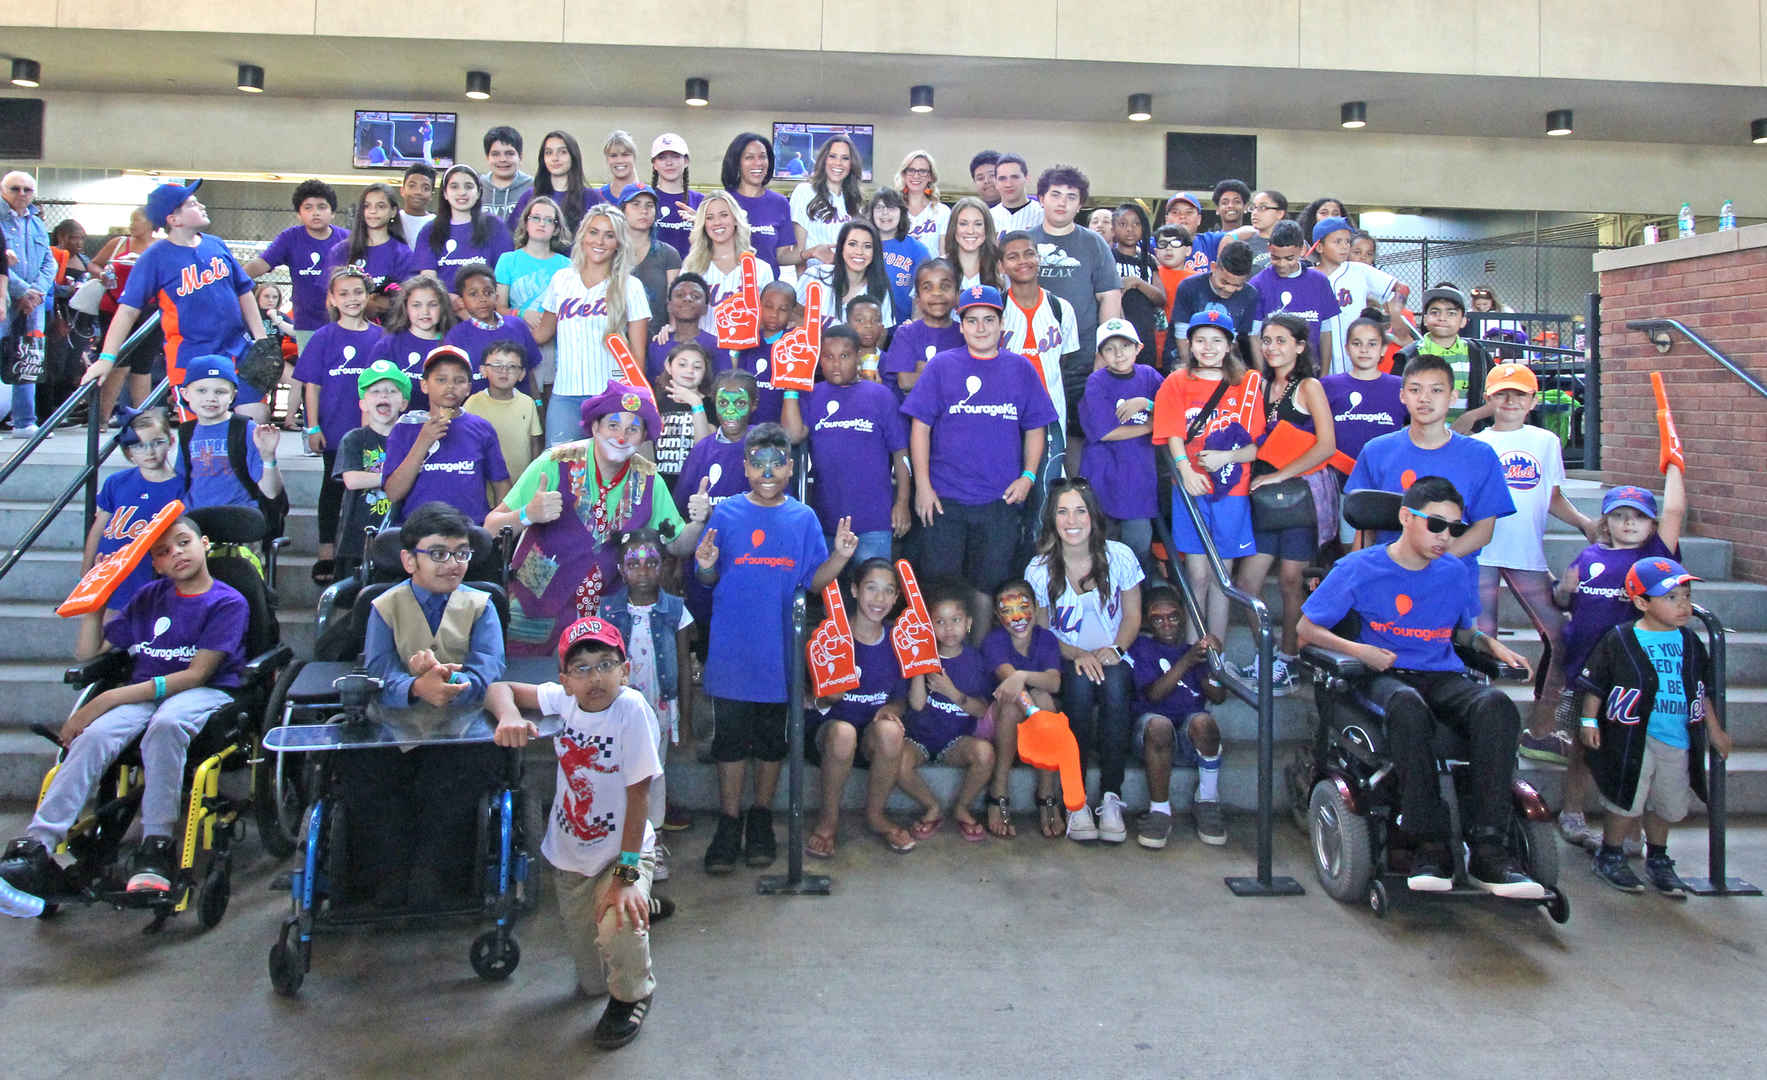 17th Annual enCourage Kids Night at Citi Field image